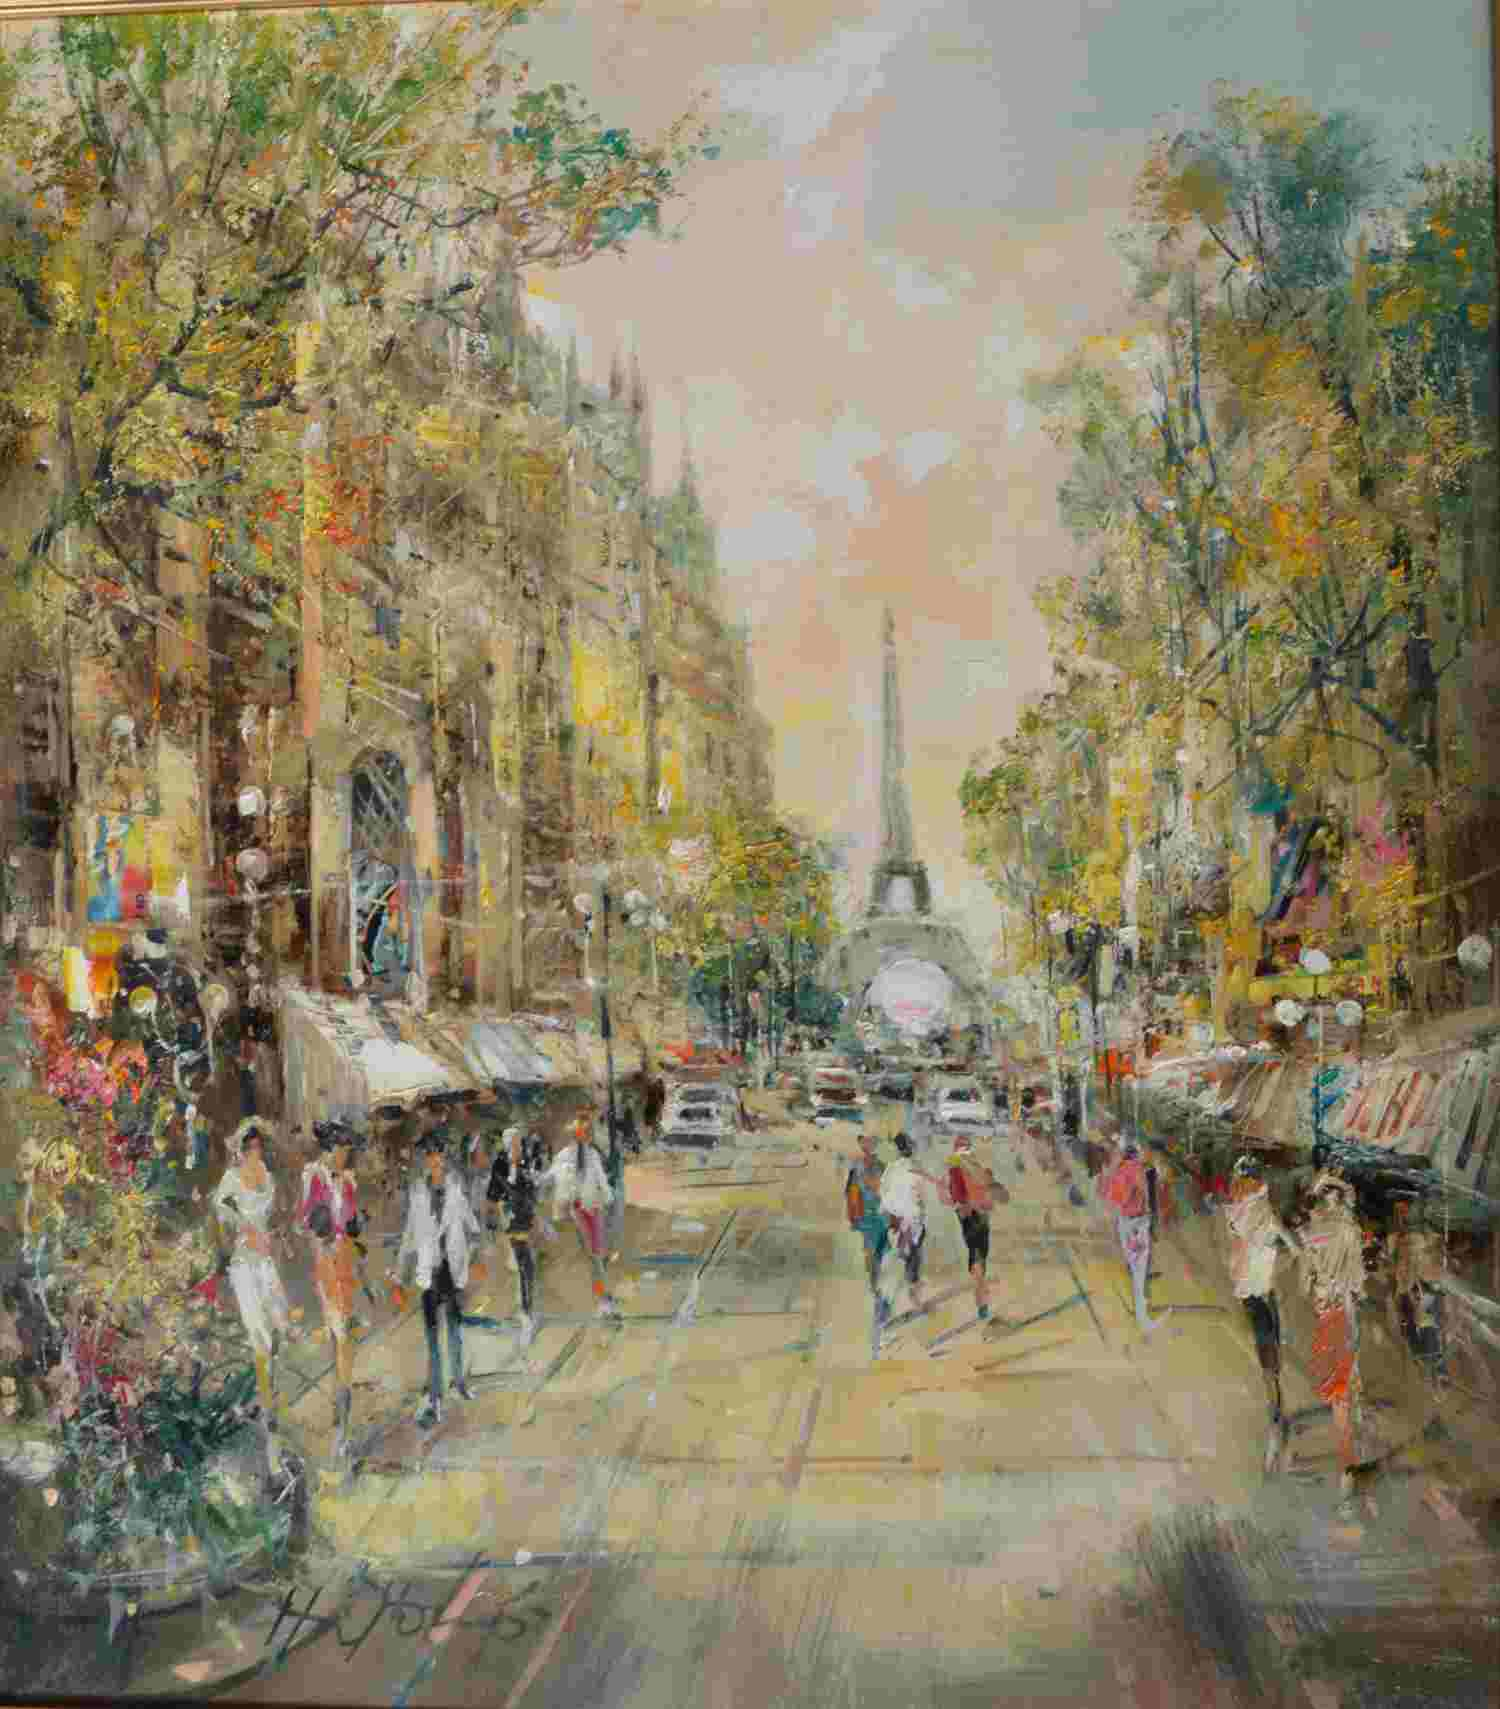 Paris von Morro-Henze, Ingfried70 x 80cm